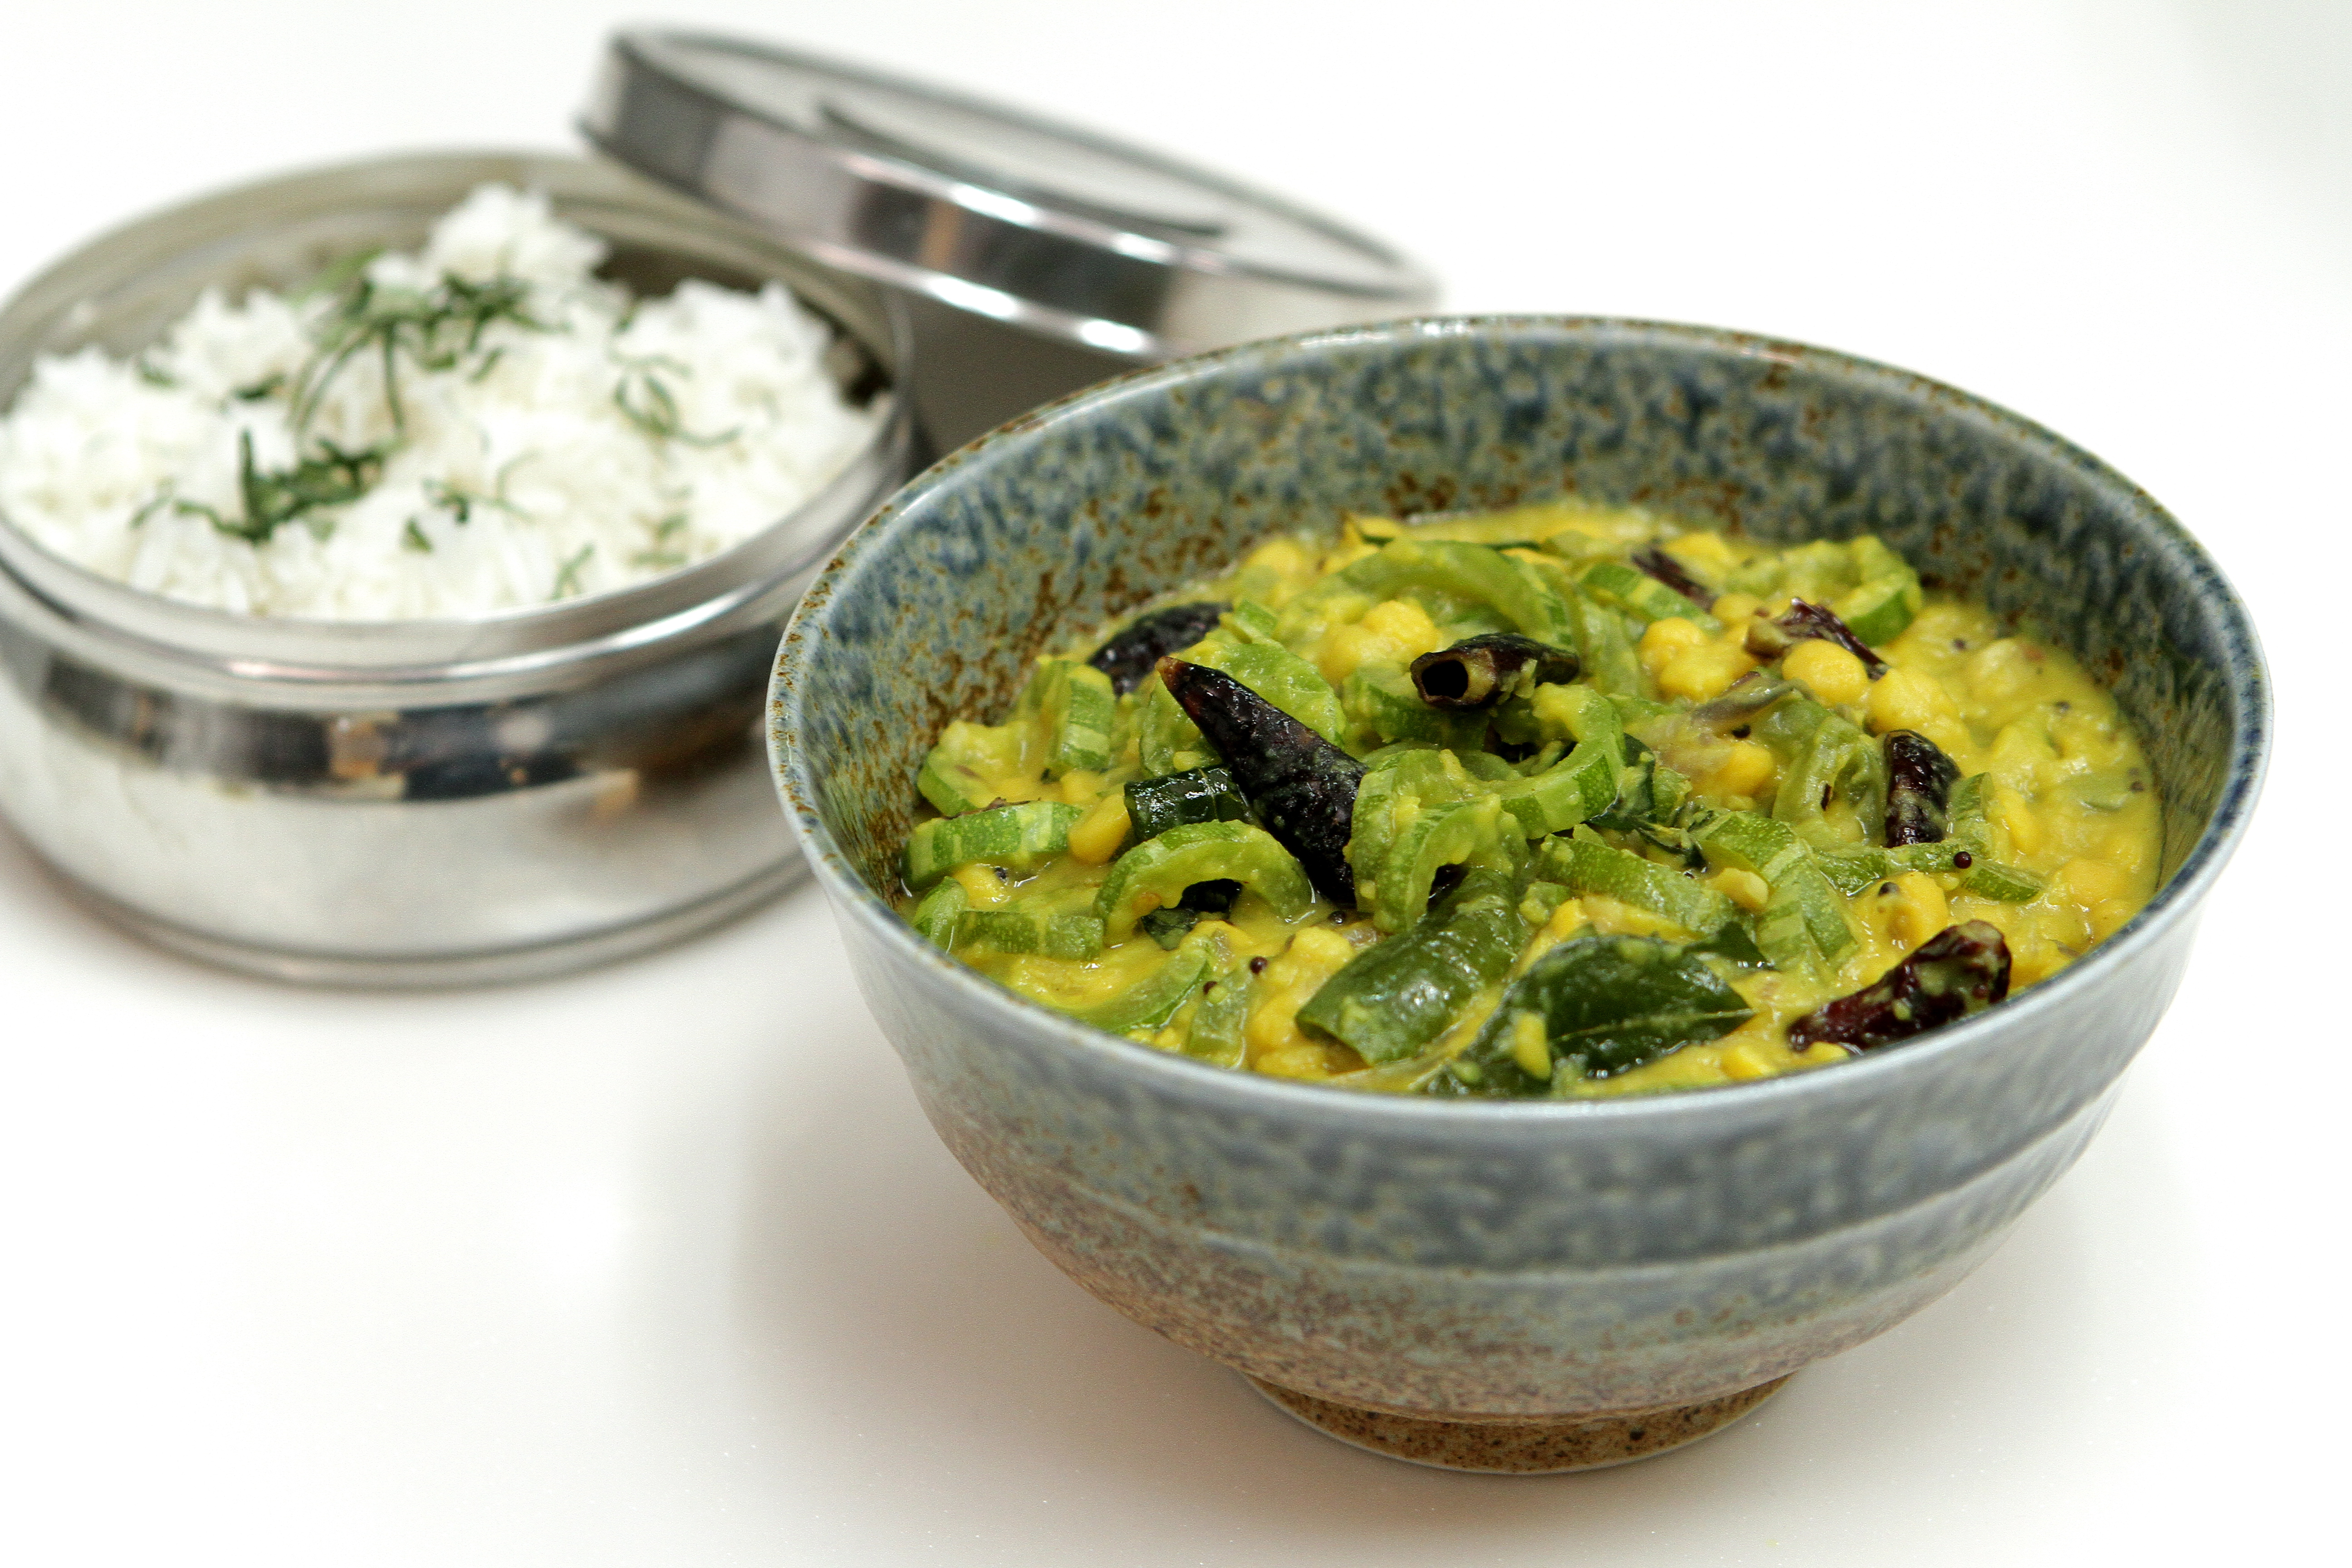 Podalangai Kootu Snake gourd with lentils